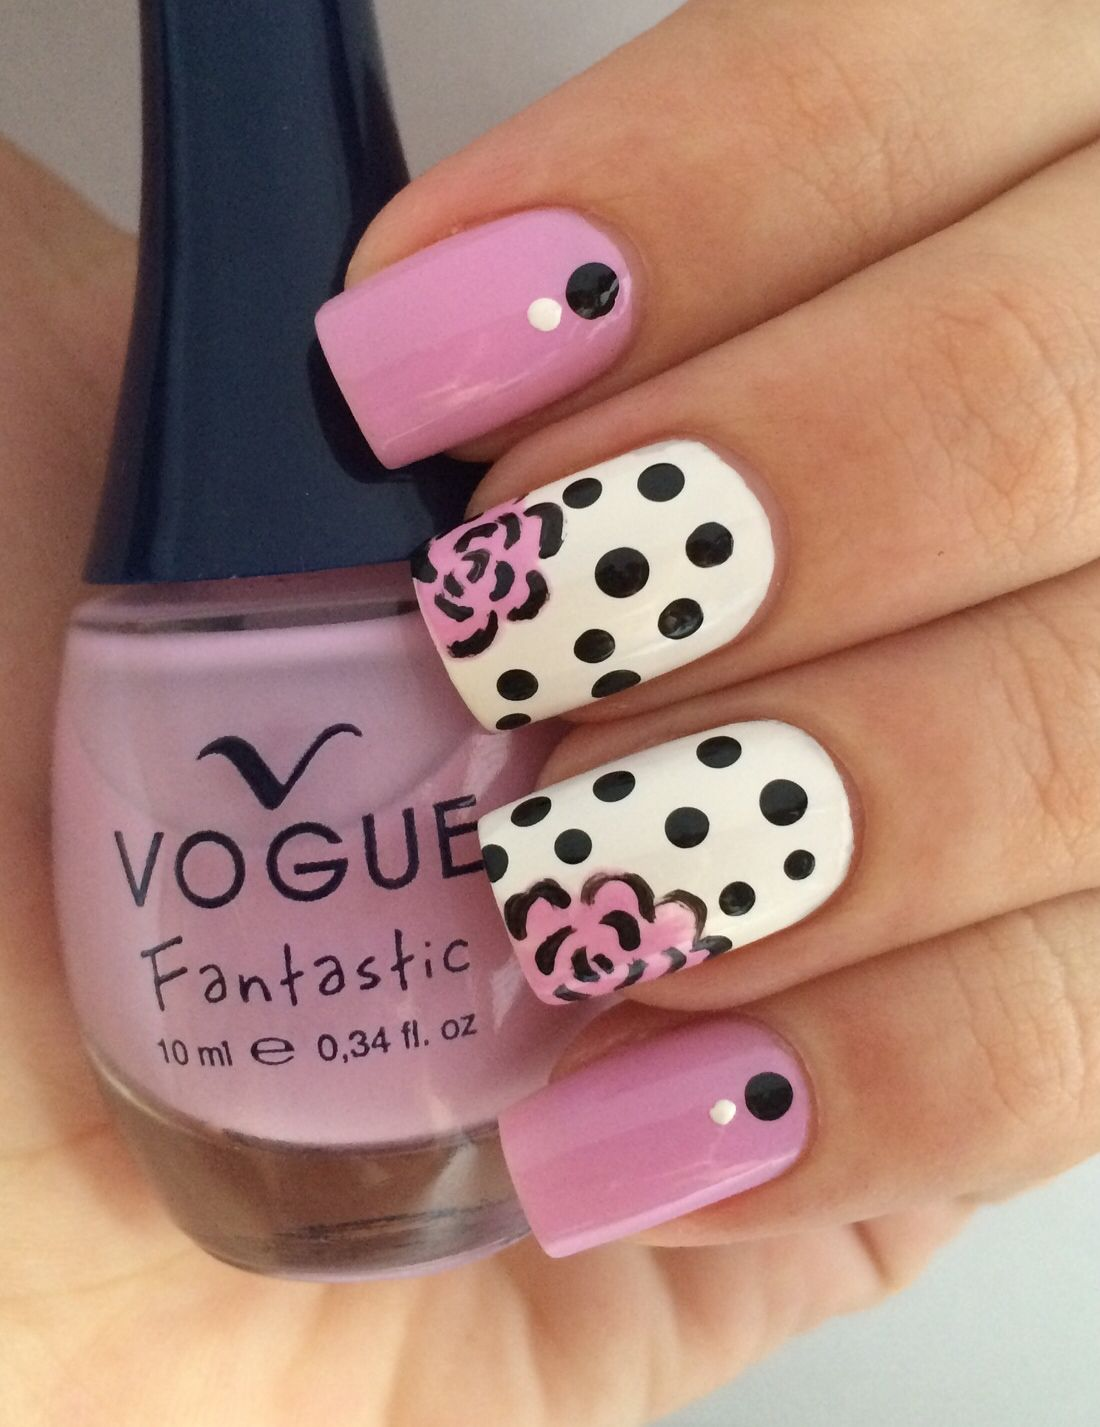 Pin by Amazing Adornments on Nail Art | Pinterest | Floral, Manicure ...